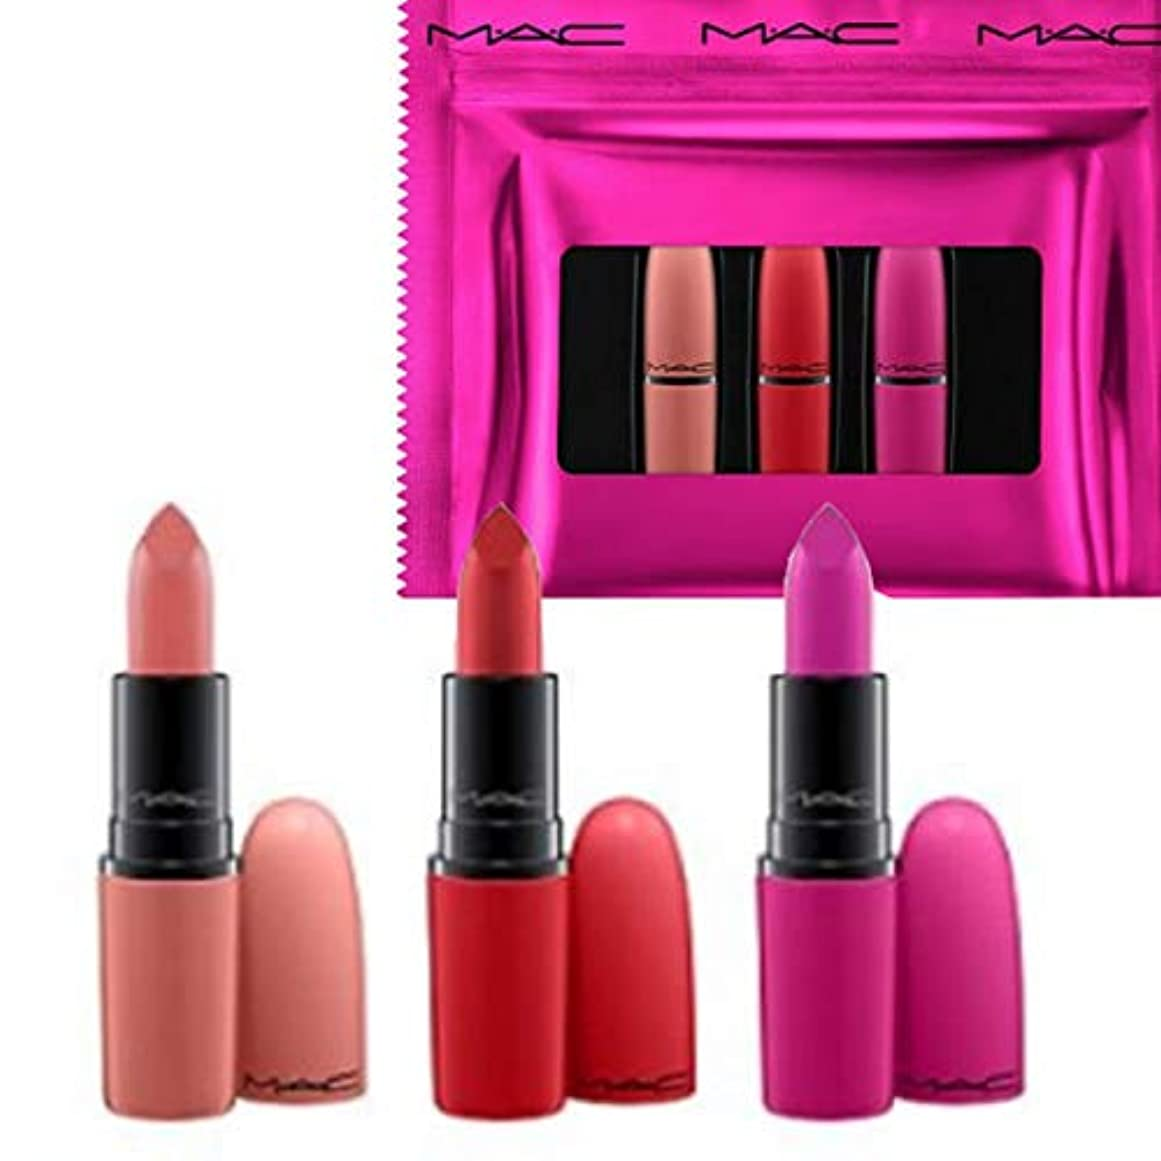 M.A.C ?マック, Limited Edition 限定版, 3-Pc. Shiny Pretty Things Lip Set - Russian Red/Kinda Sexy/Flat Out Fabulous...